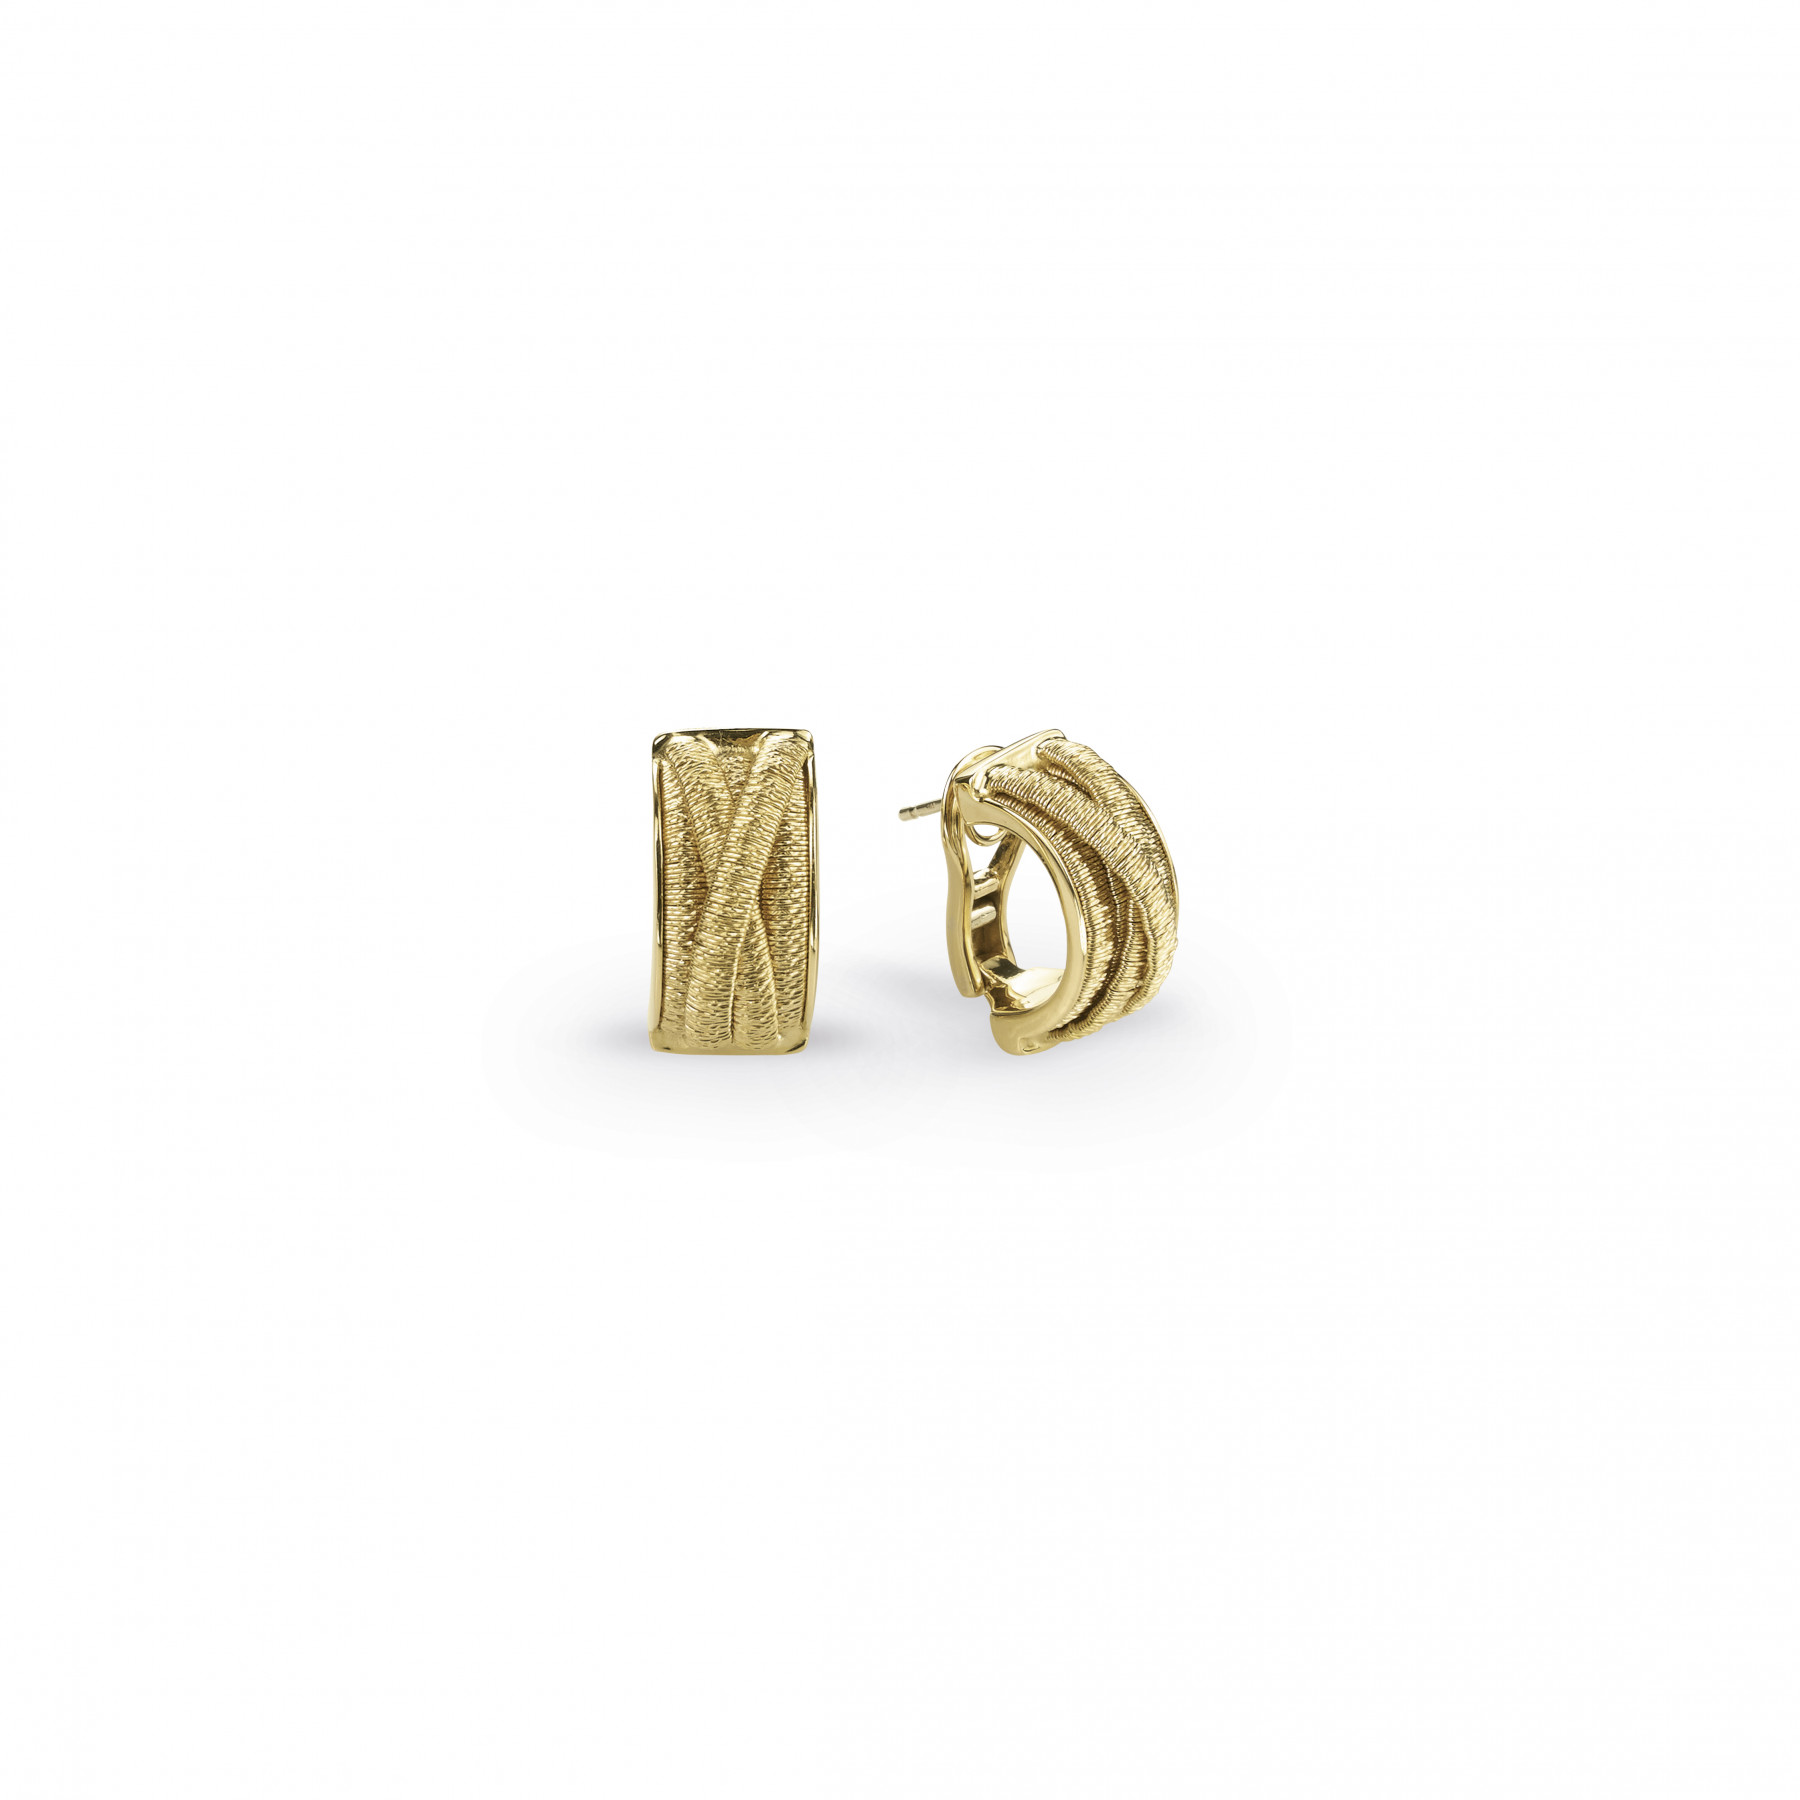 Marco Bicego Il Cairo Multi-Strand Earrings in 18kt Yellow Gold